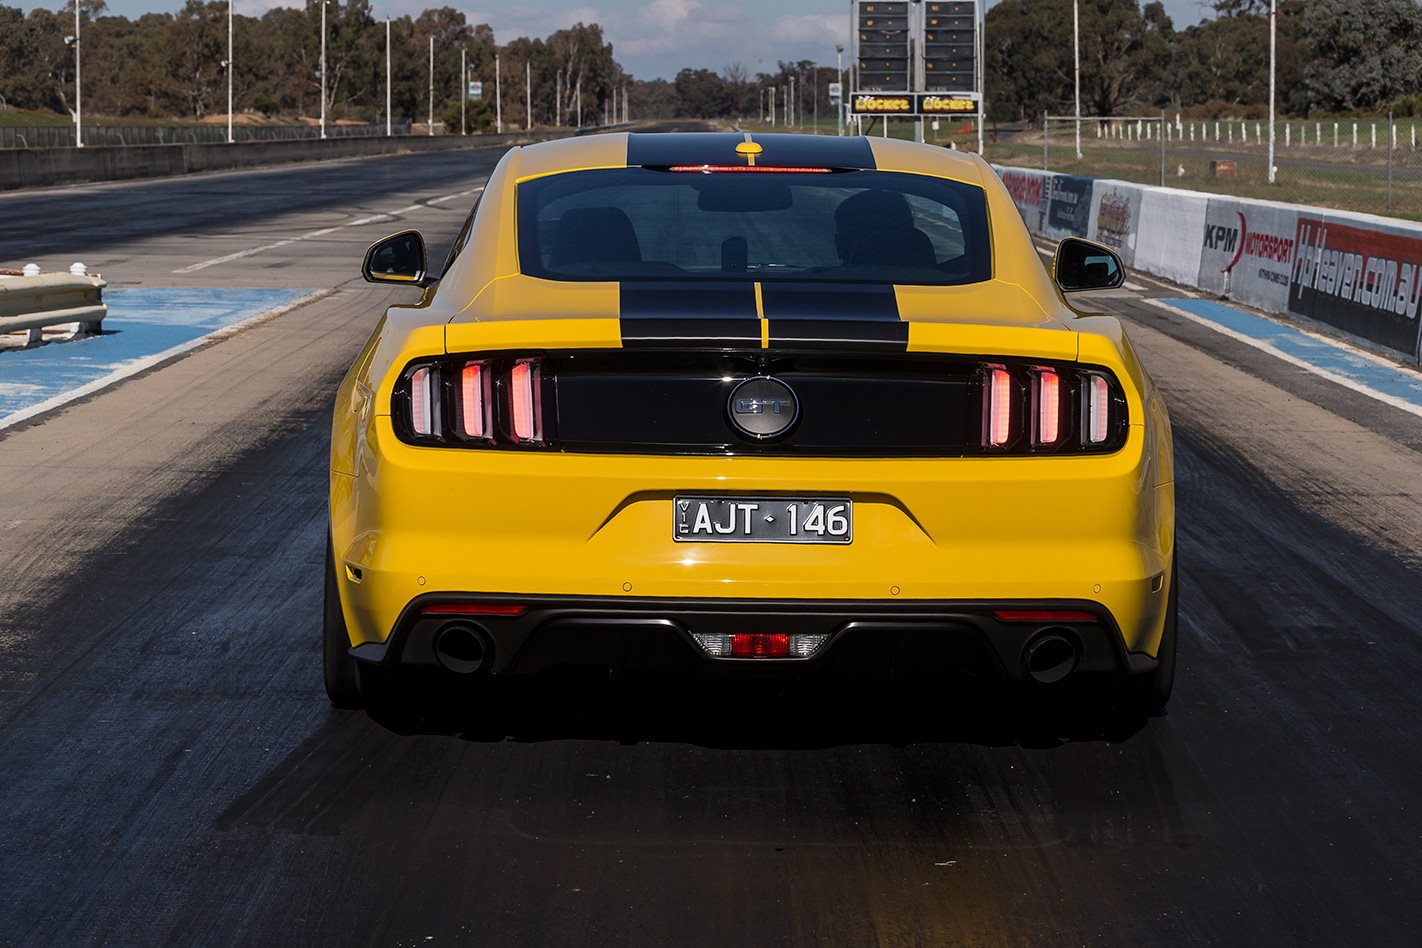 2017 Corsa Specialised Vehicles Mustang GT tailights.jpg